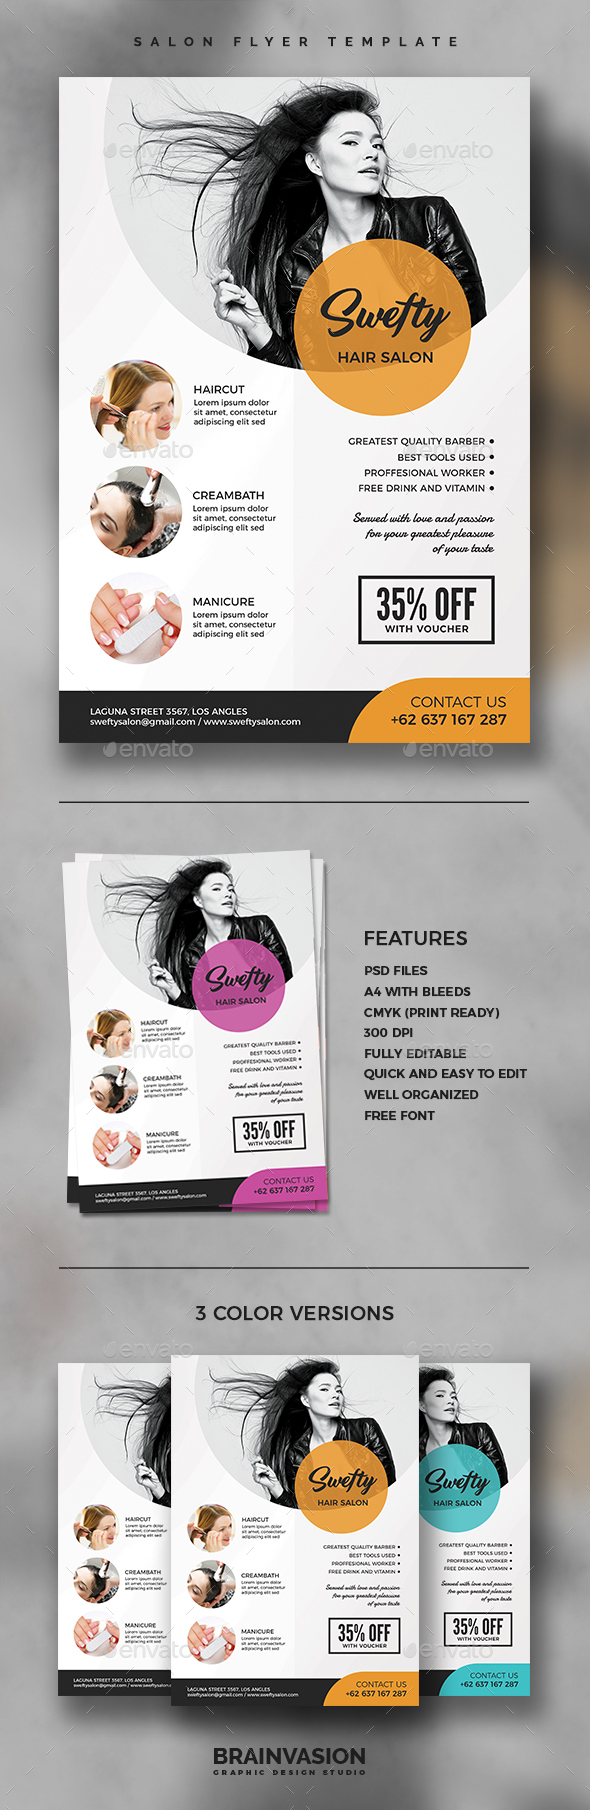 Salon Flyer Template Vol.02